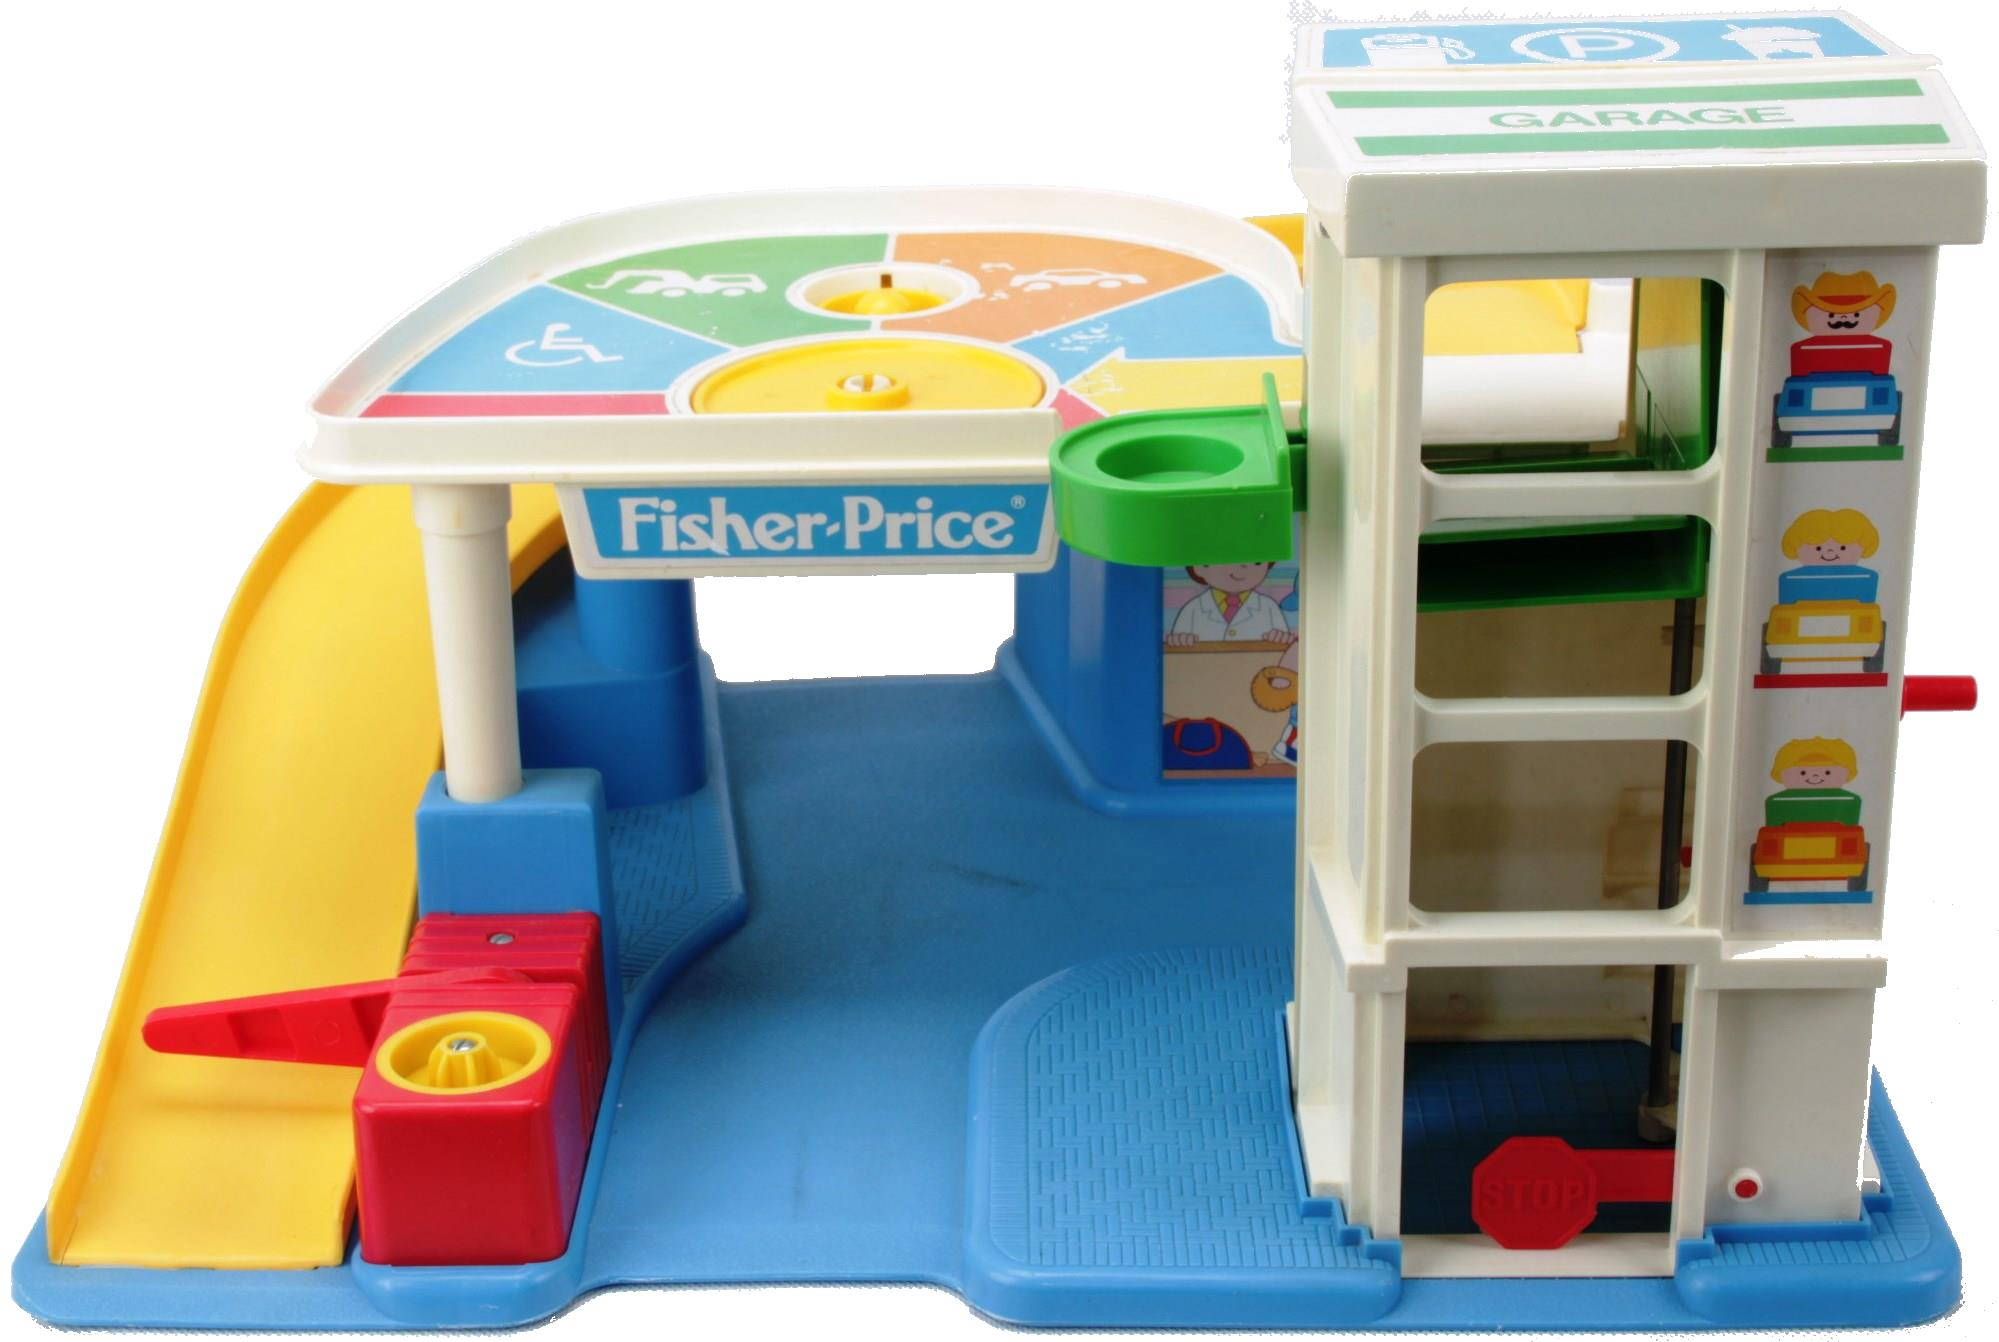 Garage Fisher Price : Fisher price chunky little people parking garage